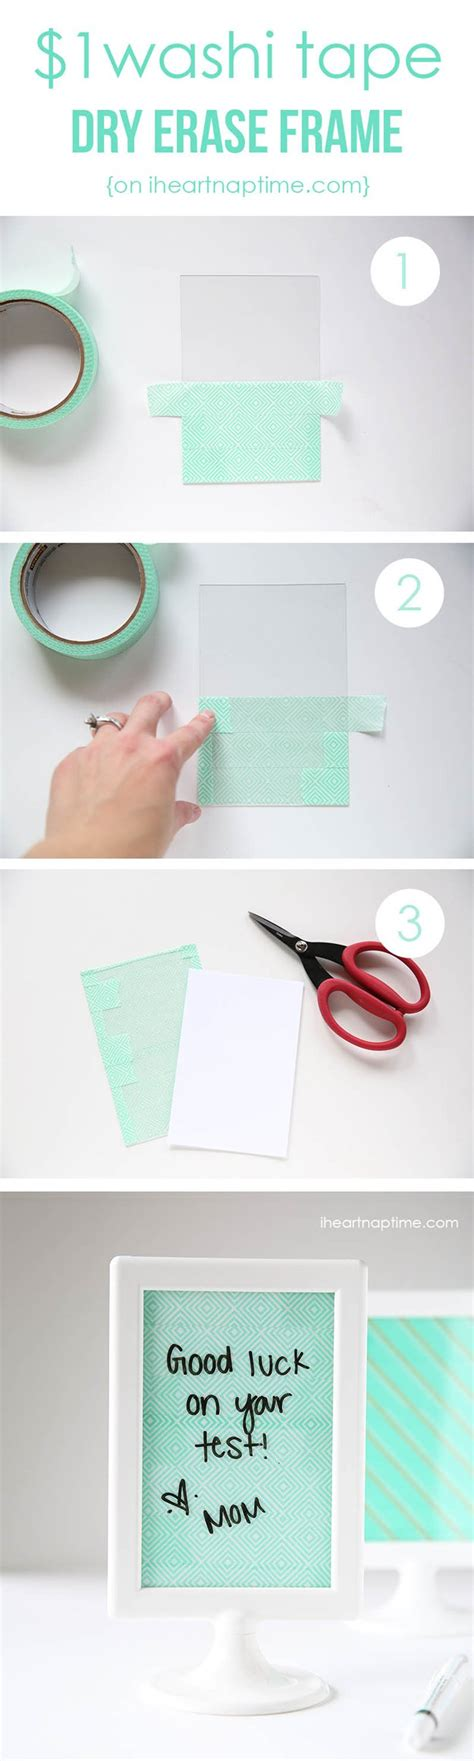 diy washi 100 creative ways to use washi tape diy crafts